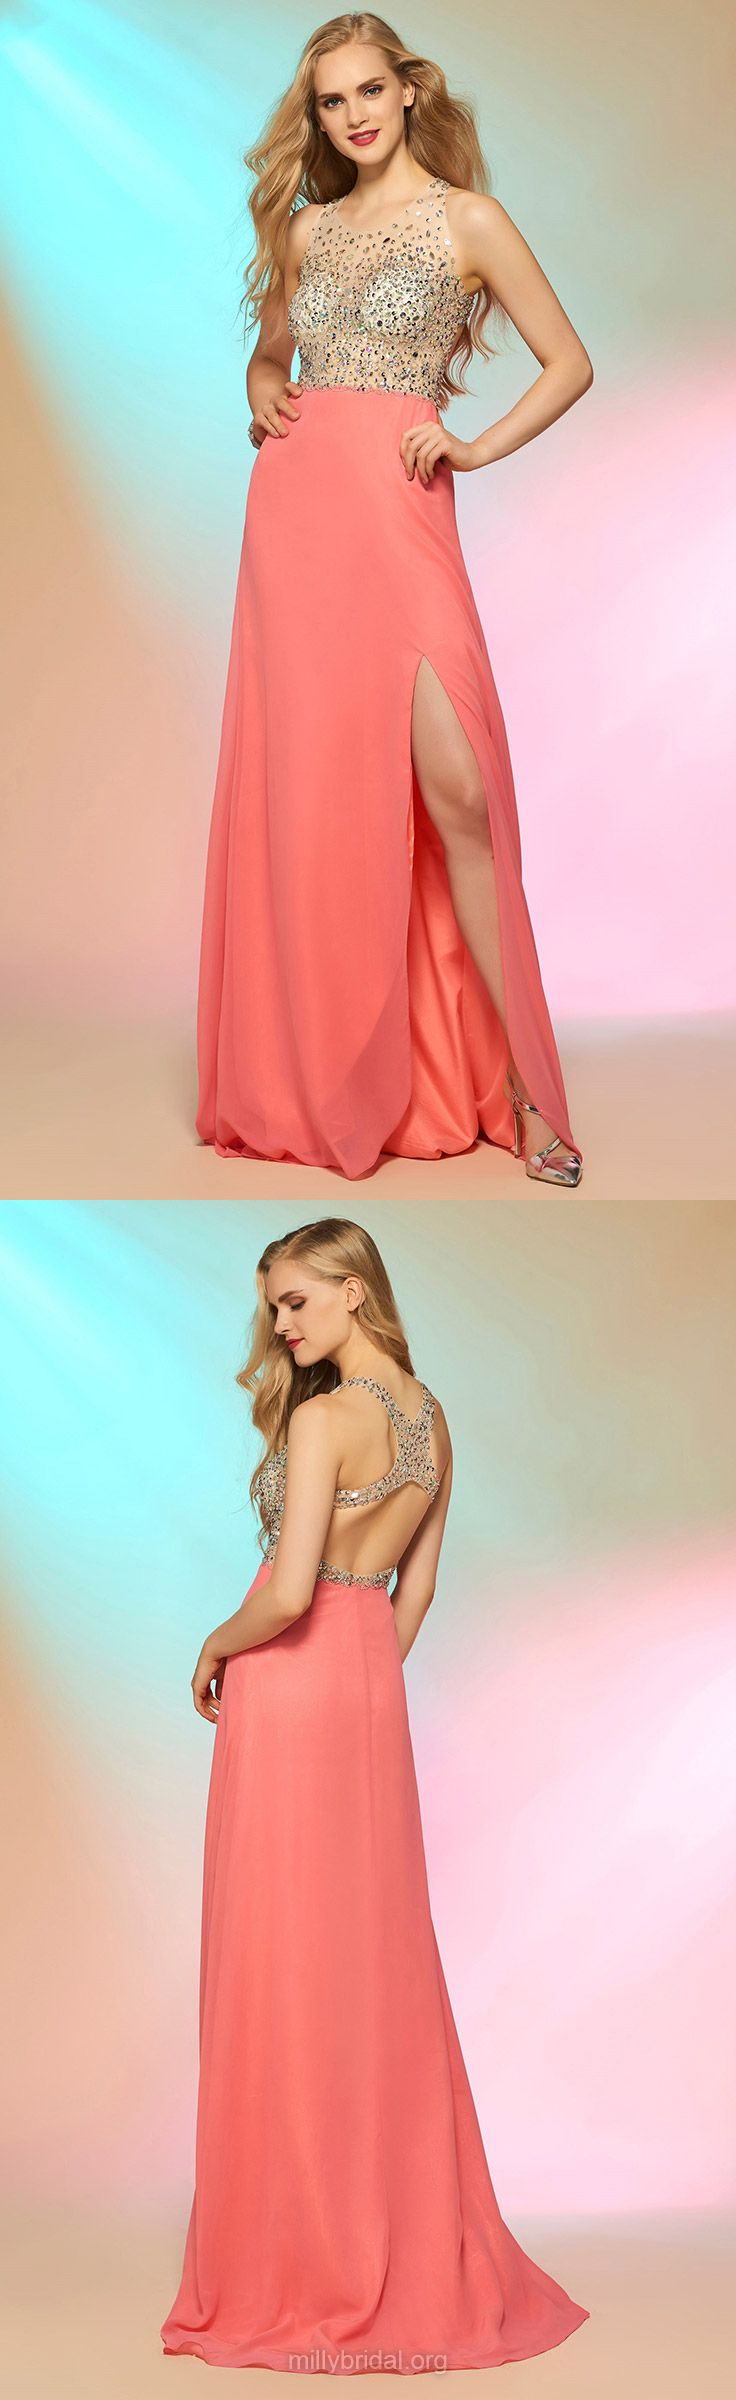 Pink Prom Dresses, Long Prom Dresses, 2018 Prom Dresses A-line, Scoop Neck Prom Dresses Chiffon, Tulle Prom Dresses with Split Front